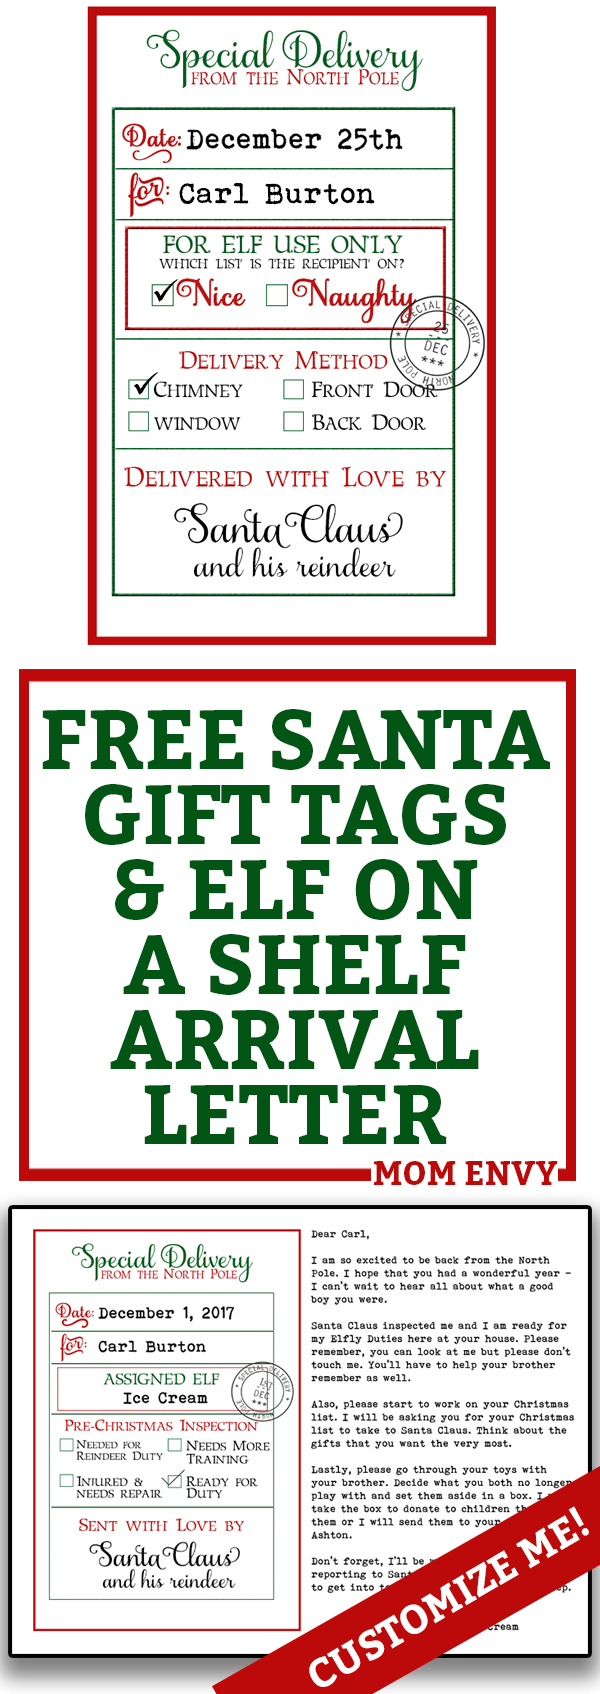 Free custom santa gift tags and elf on a shelf arrival letter free custom santa gift tags and elf on a shelf arrival letter free printable christmas negle Image collections